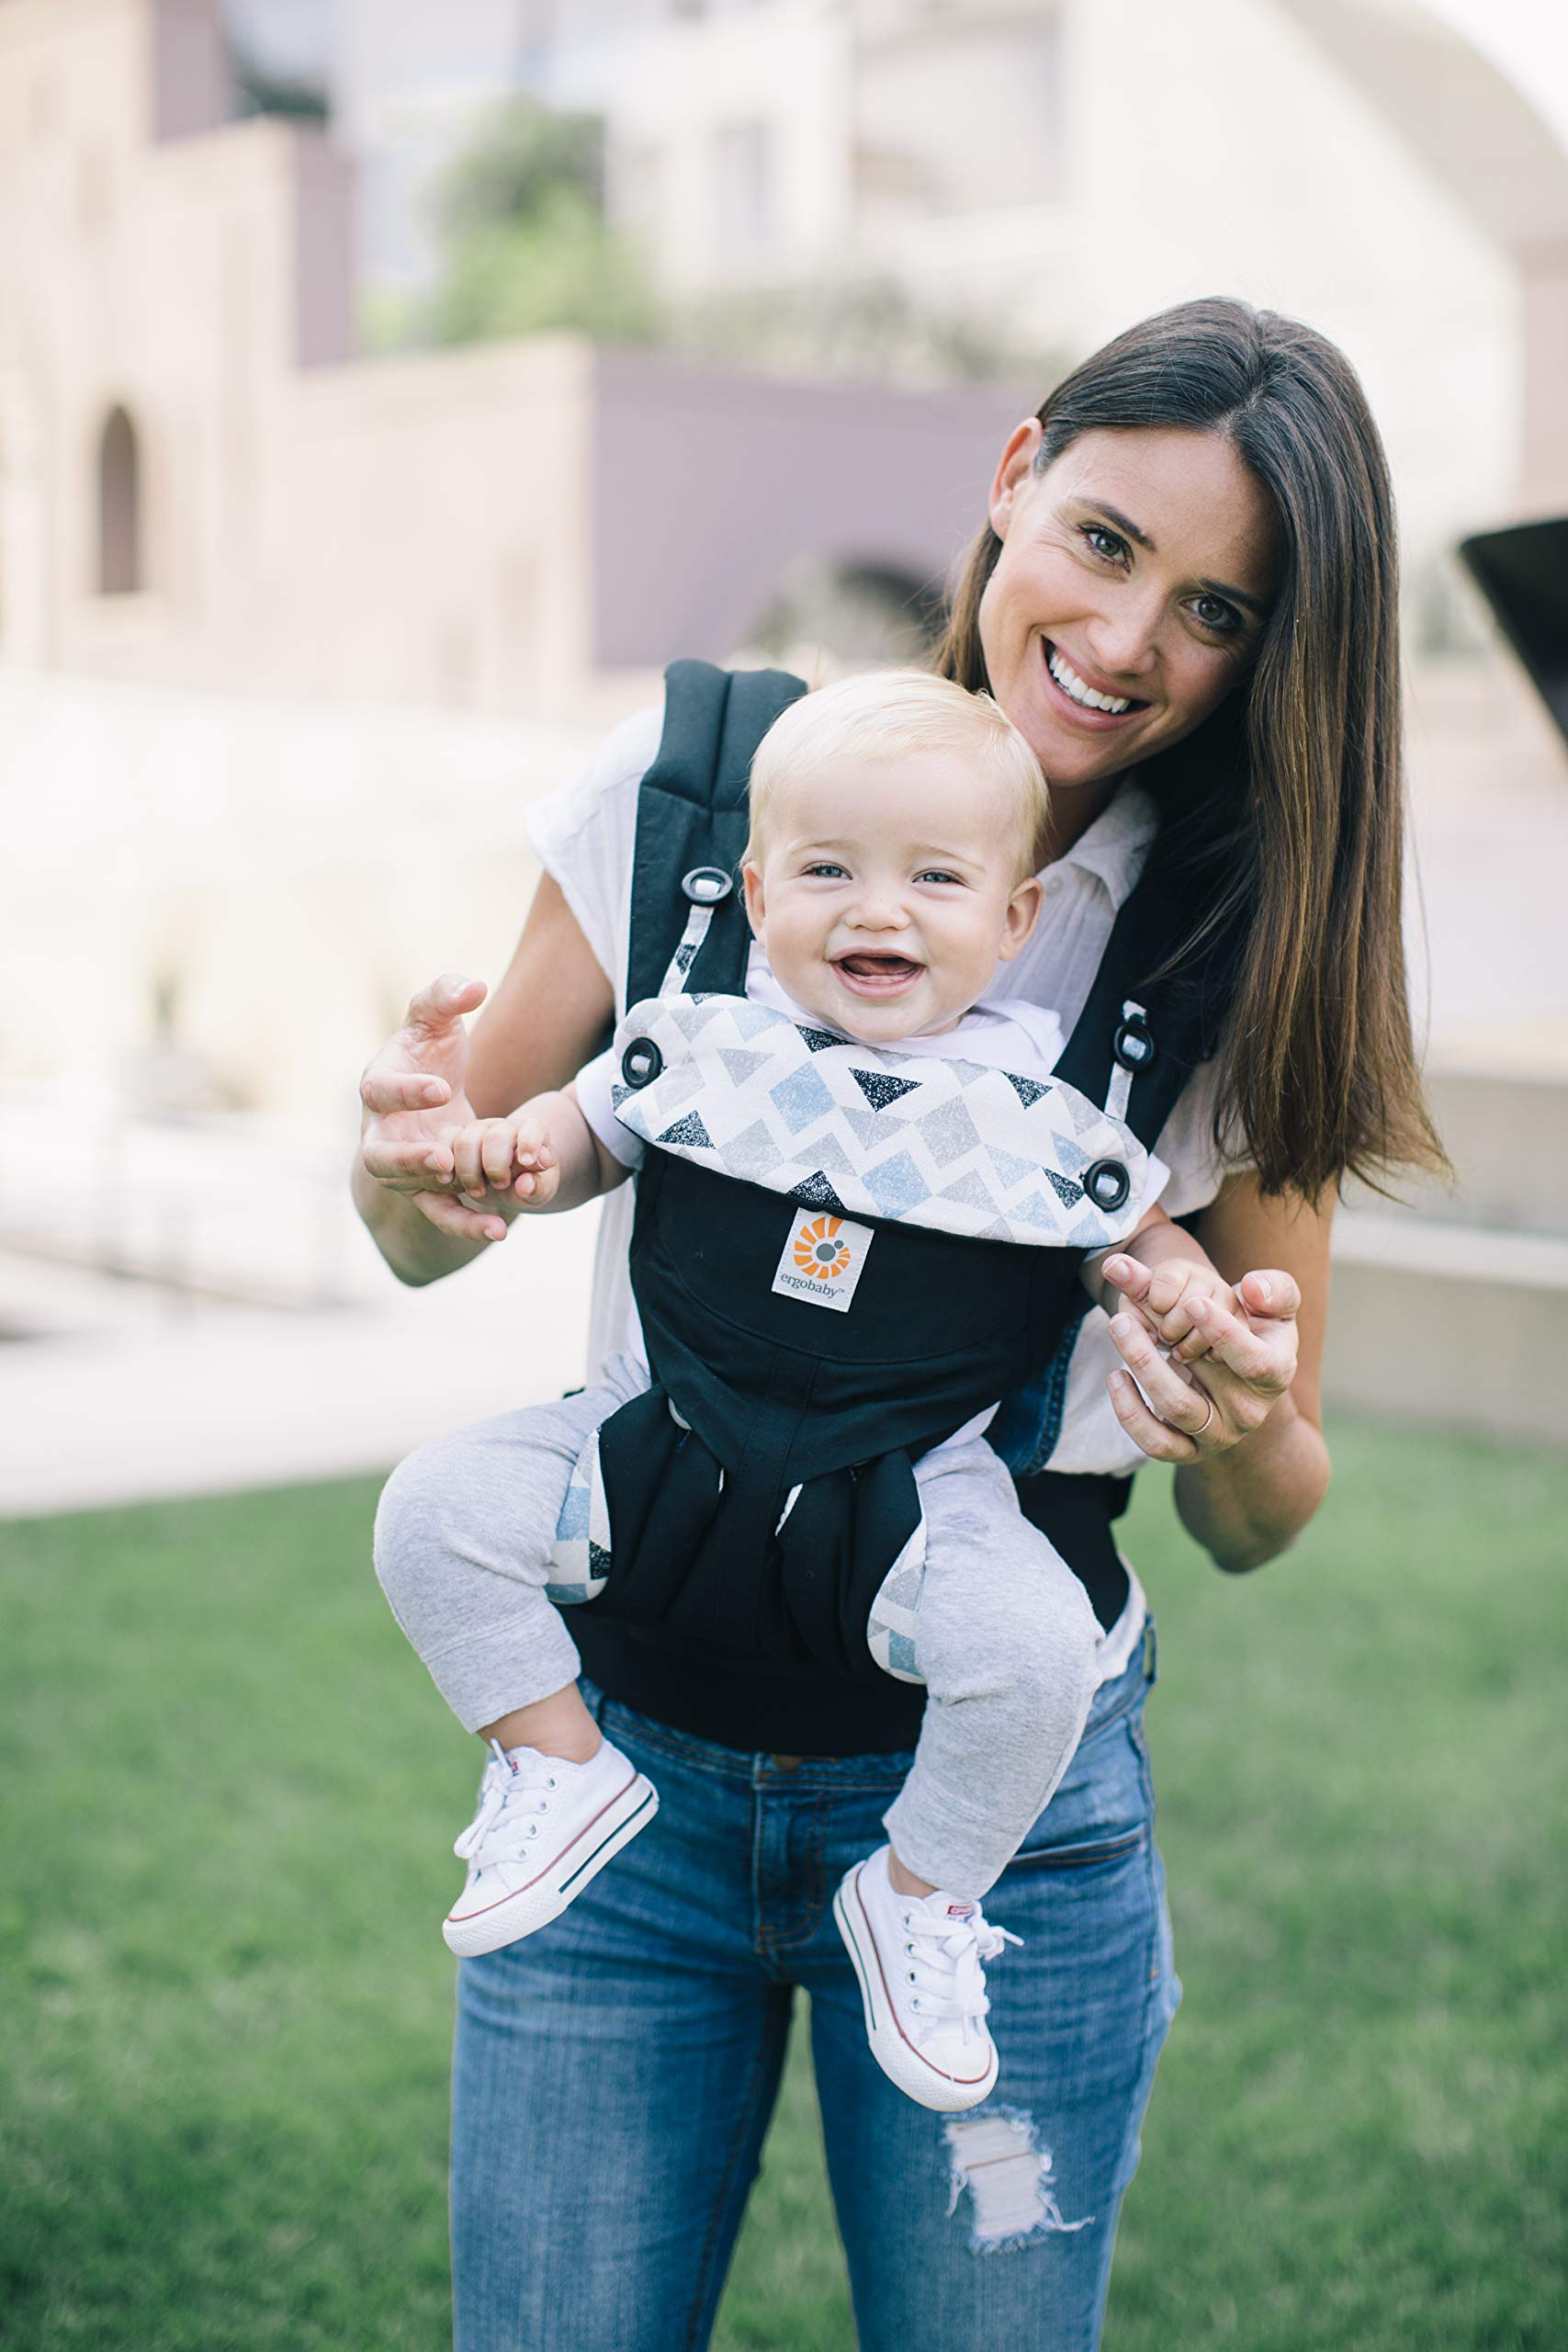 Ergobaby Baby Carrier for Toddler, 360 Collection, 4-Position Ergonomic Child Carrier and Backpack (Triple Triangles) Ergobaby Ergonomic baby carrier with 4 carry positions: front-inward, back, hip, and front-outward. The carrier is suitable for babies and toddlers weighing 5.5 to 20kg, and can be used as a back carrier. Also with insert for newborn babies weighing 3.2-5.5kg, sold separately. NEW - Maximum comfort for parent: Longwear comfort with lumbar support waistbelt and extra cushioned shoulder straps. The carrier is suitable for men and women. Maximum baby comfort - The structured bucket seat supports the correct frog-leg position for the baby. The carrier also has a padded, foldable head and neck support. Ergobaby carriers are a new take on the usual baby sling. 4